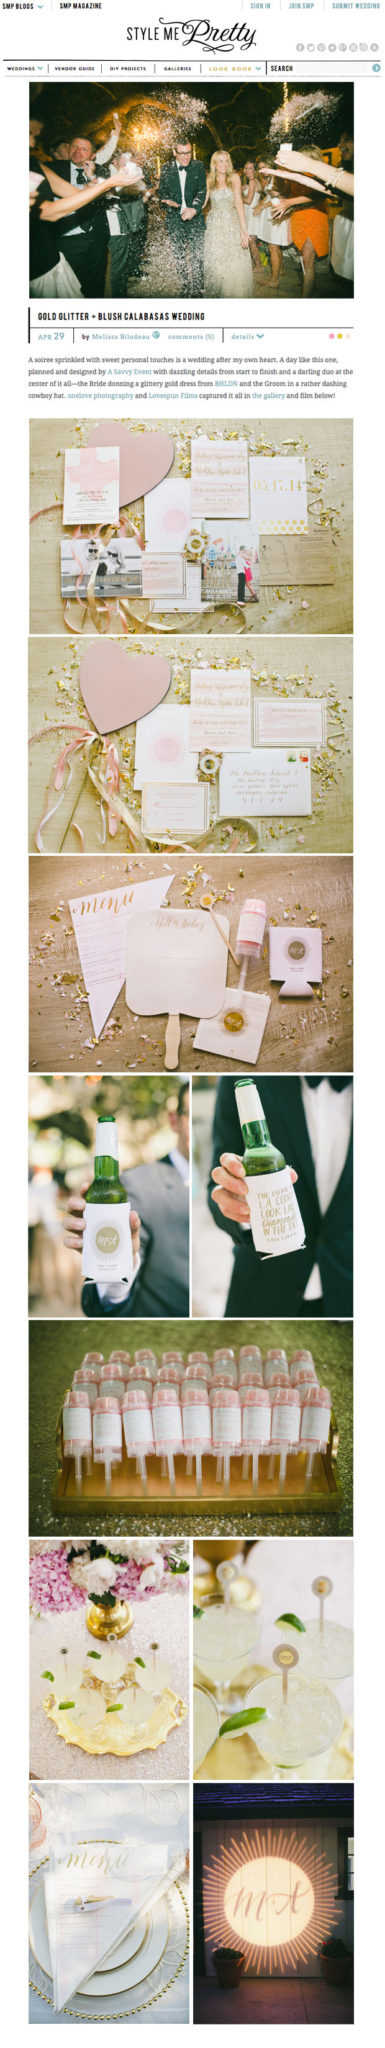 Style Me Pretty Wedding Feature | April 2015